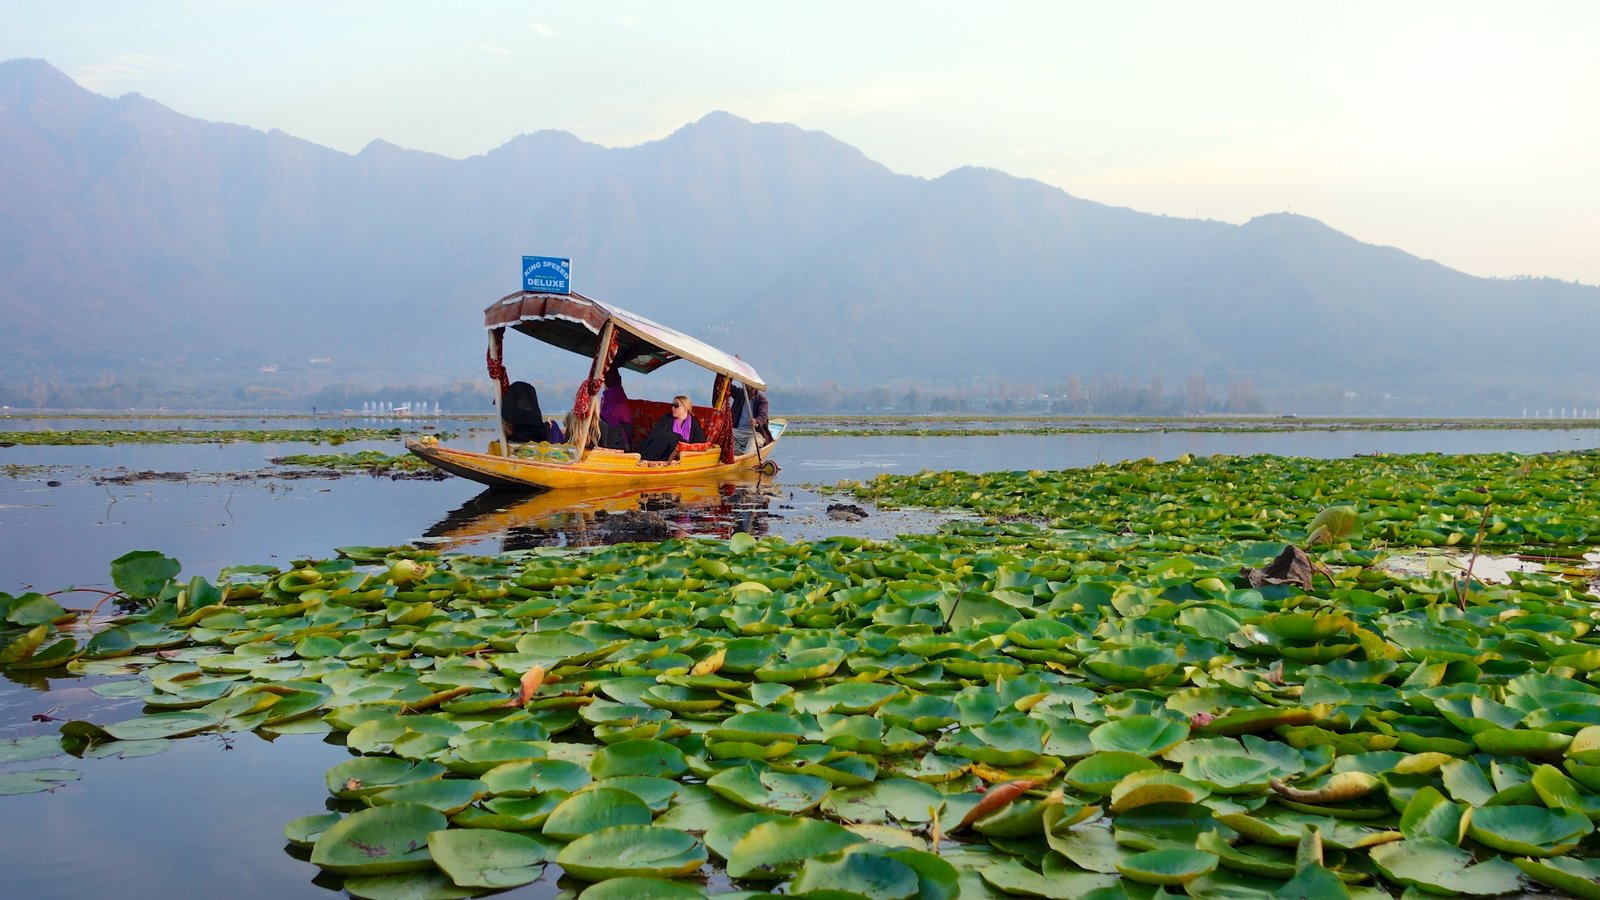 Jammu and Kashmir showing landscape views, boating and a lake or waterhole